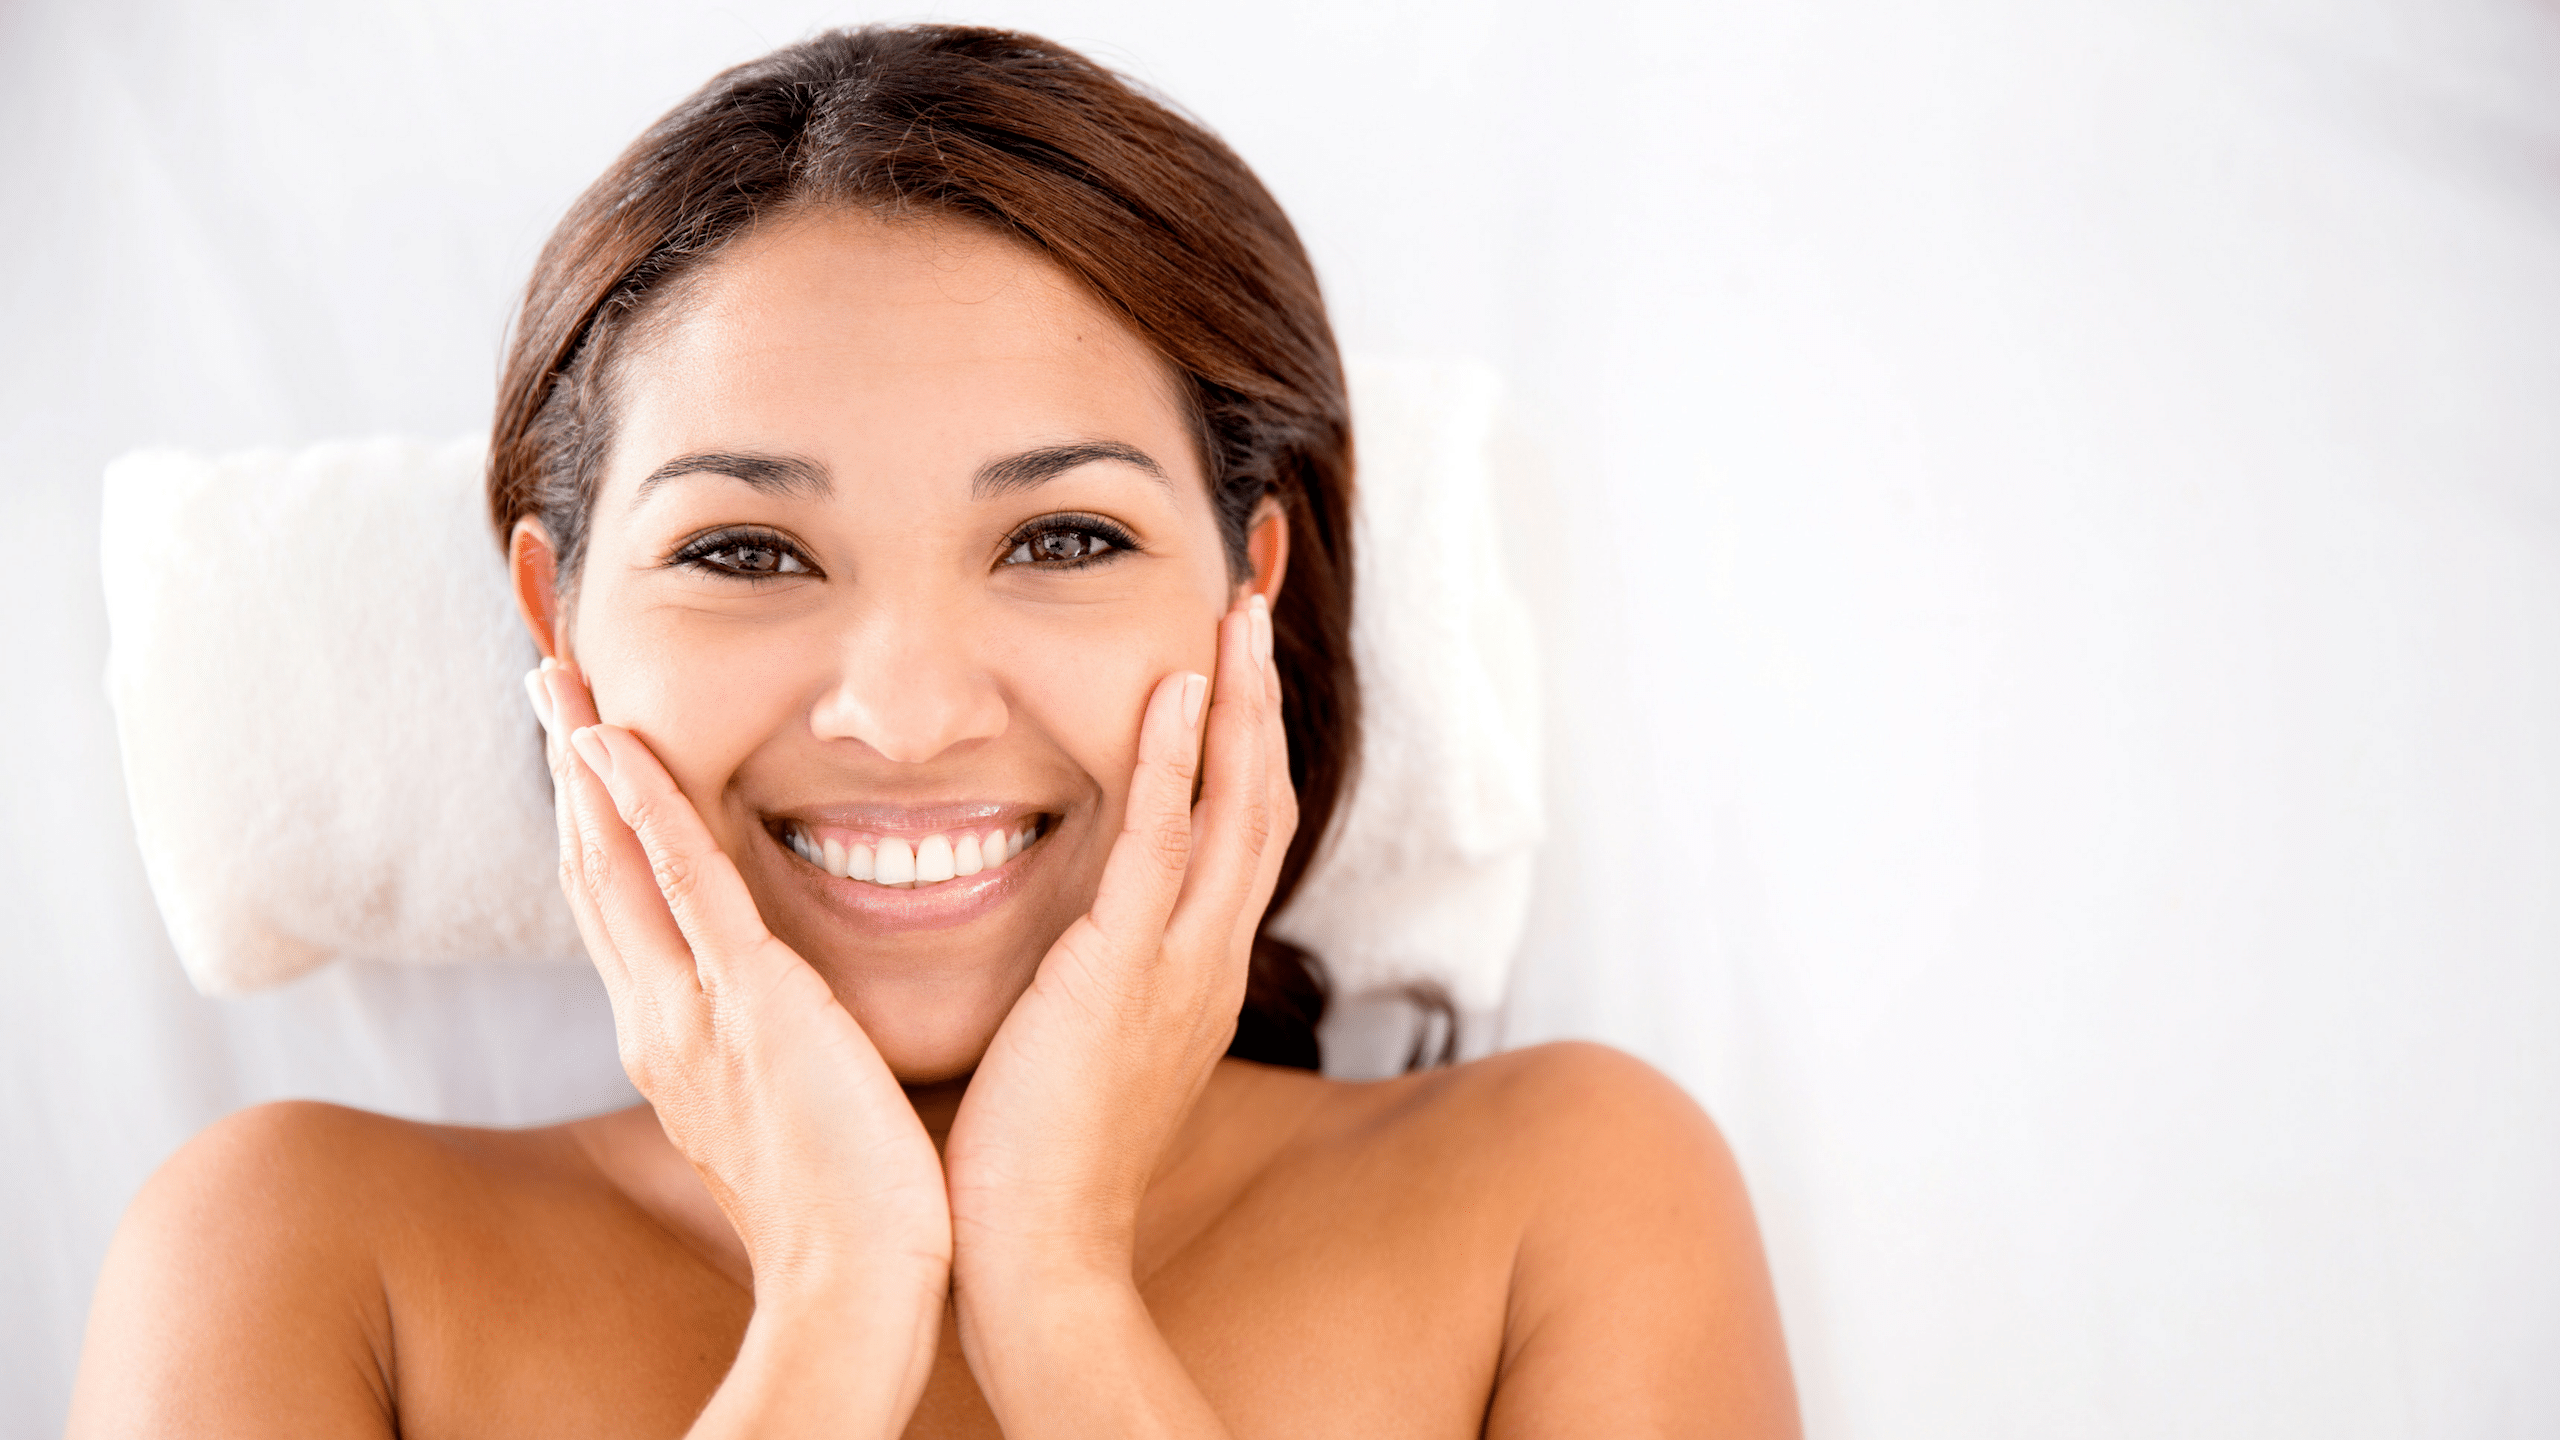 Benefits of Ice cubes on Face Skin in Summer